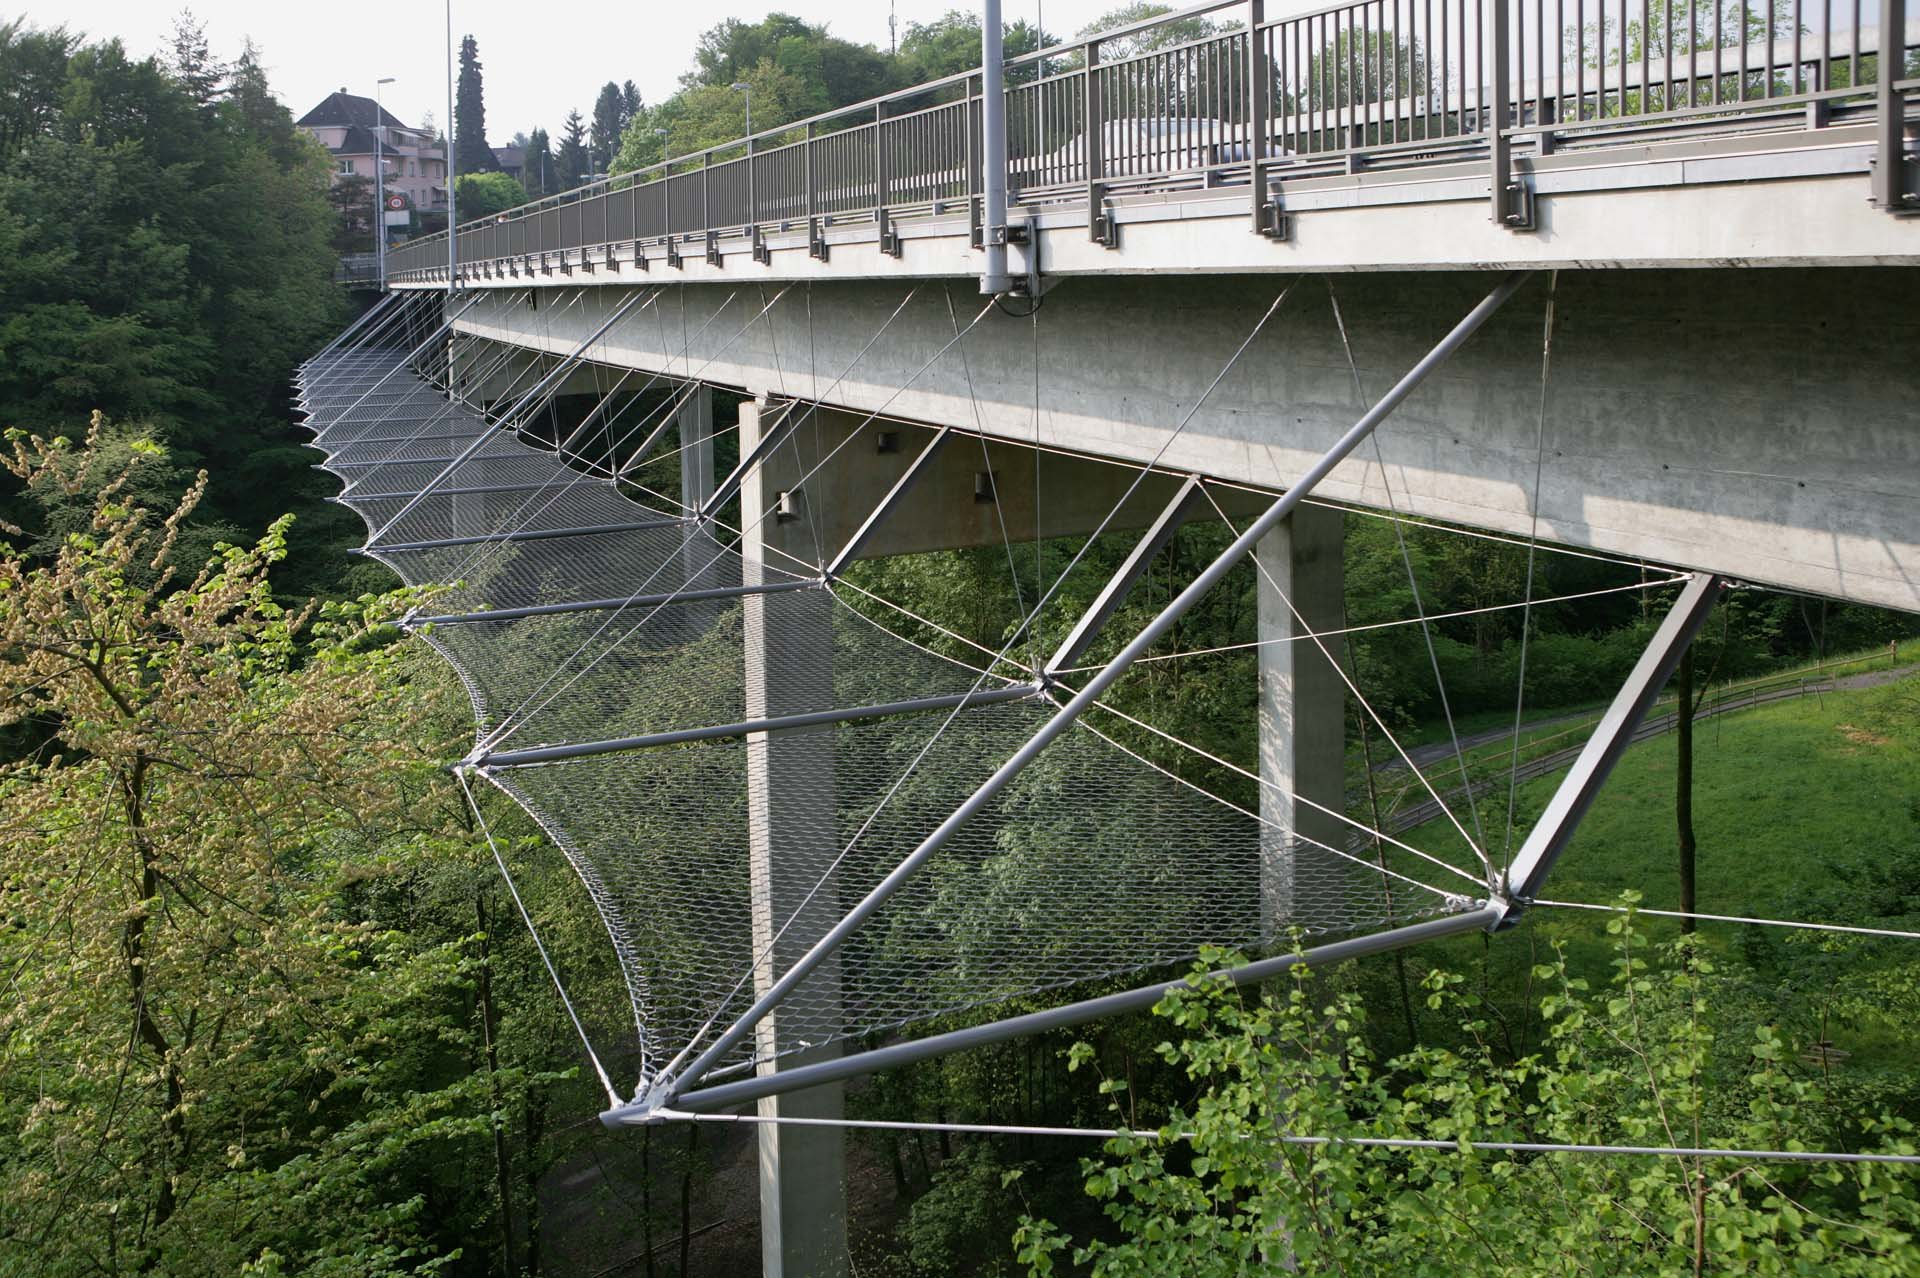 Horizontal bridge safety net in Rothenburg, Switzerland